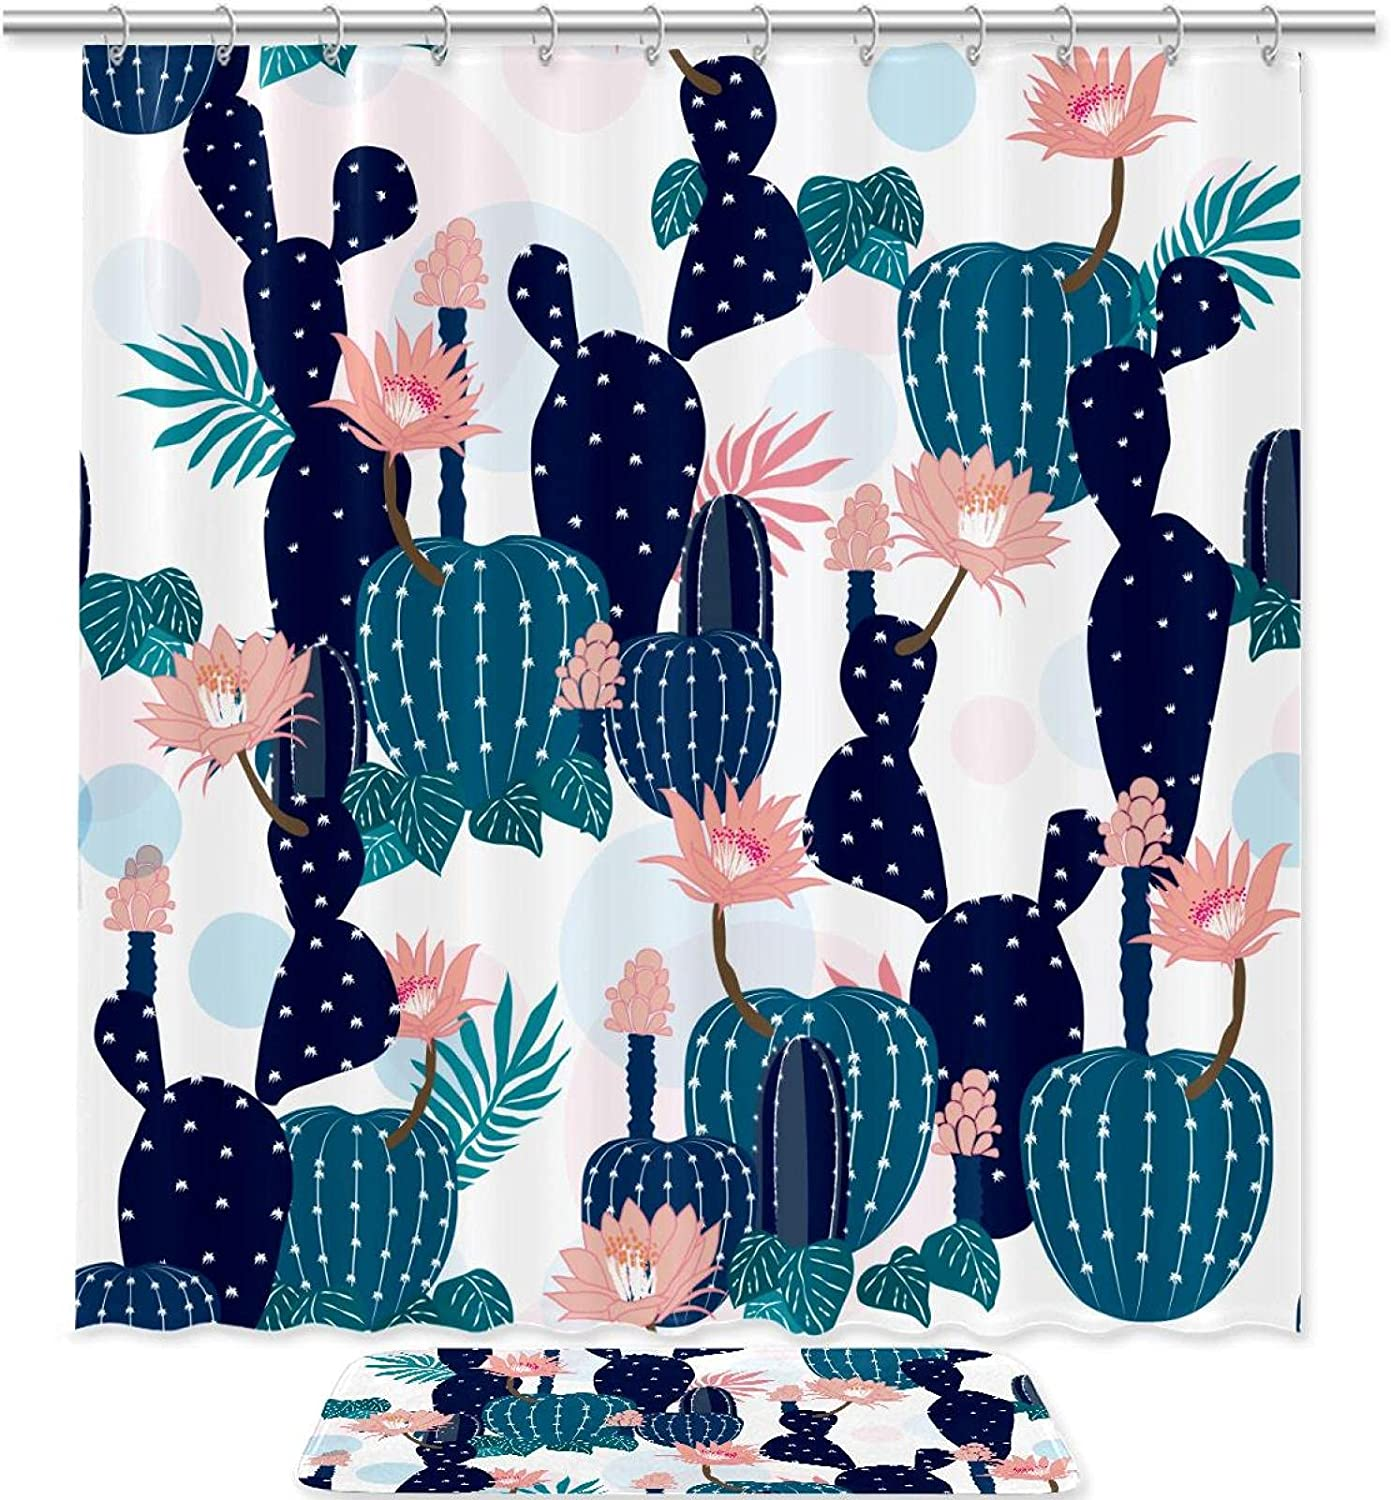 Shower Opening large release sale Curtain Sets with Bathroom Rugs and Plant Hooks Fl Award Cactus